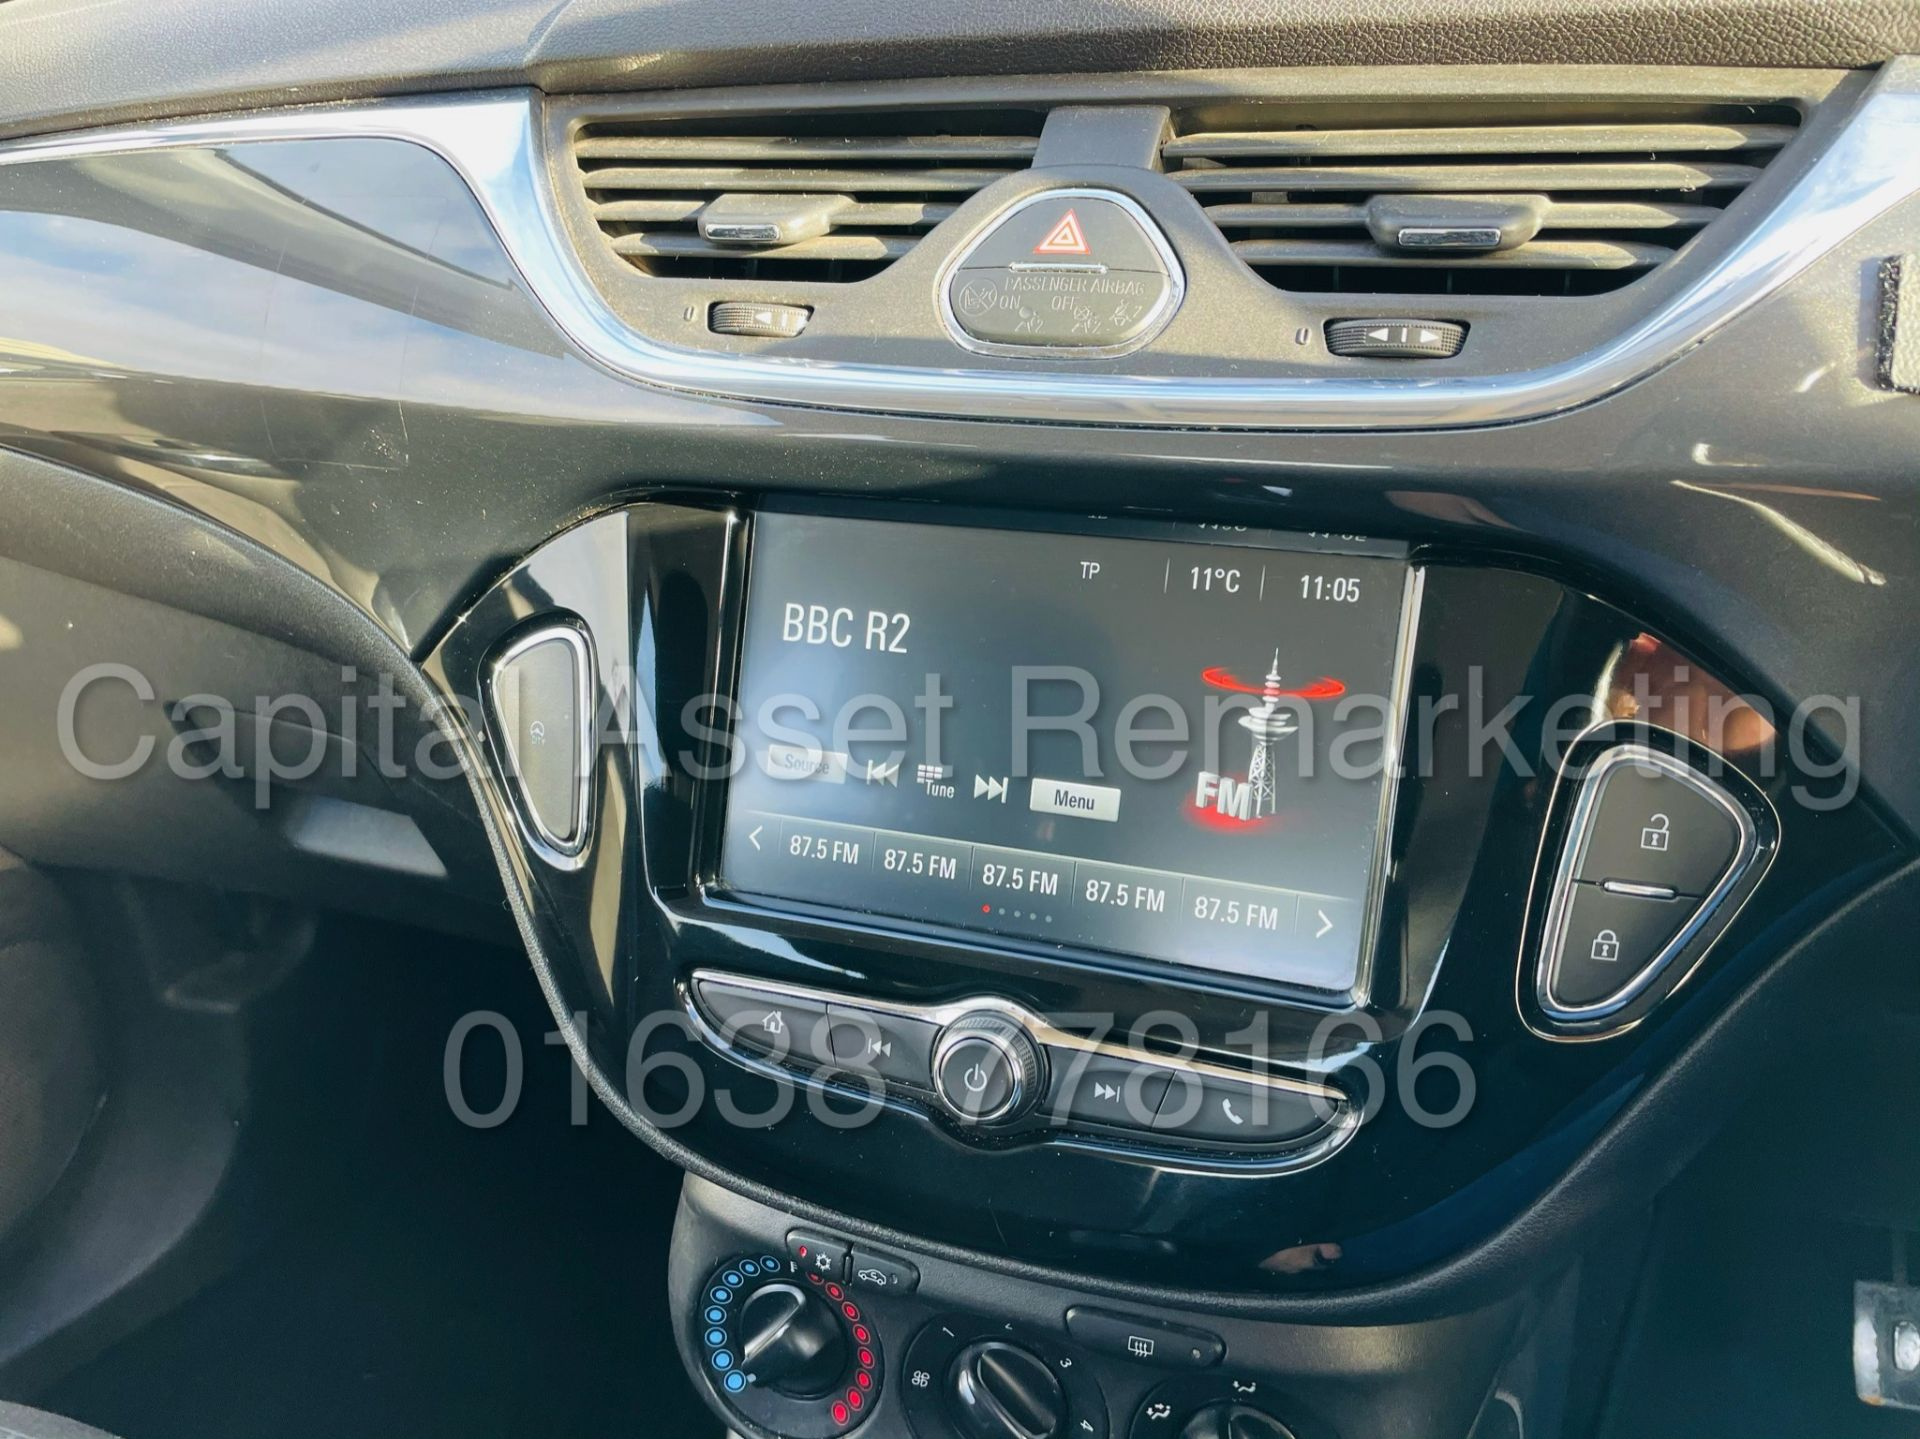 On Sale VAUXHALL CORSA *DESIGN EDITION* 5 DOOR HATCHBACK (2019 - NEW MODEL) 1.4 PETROL - (1 OWNER) - Image 36 of 42